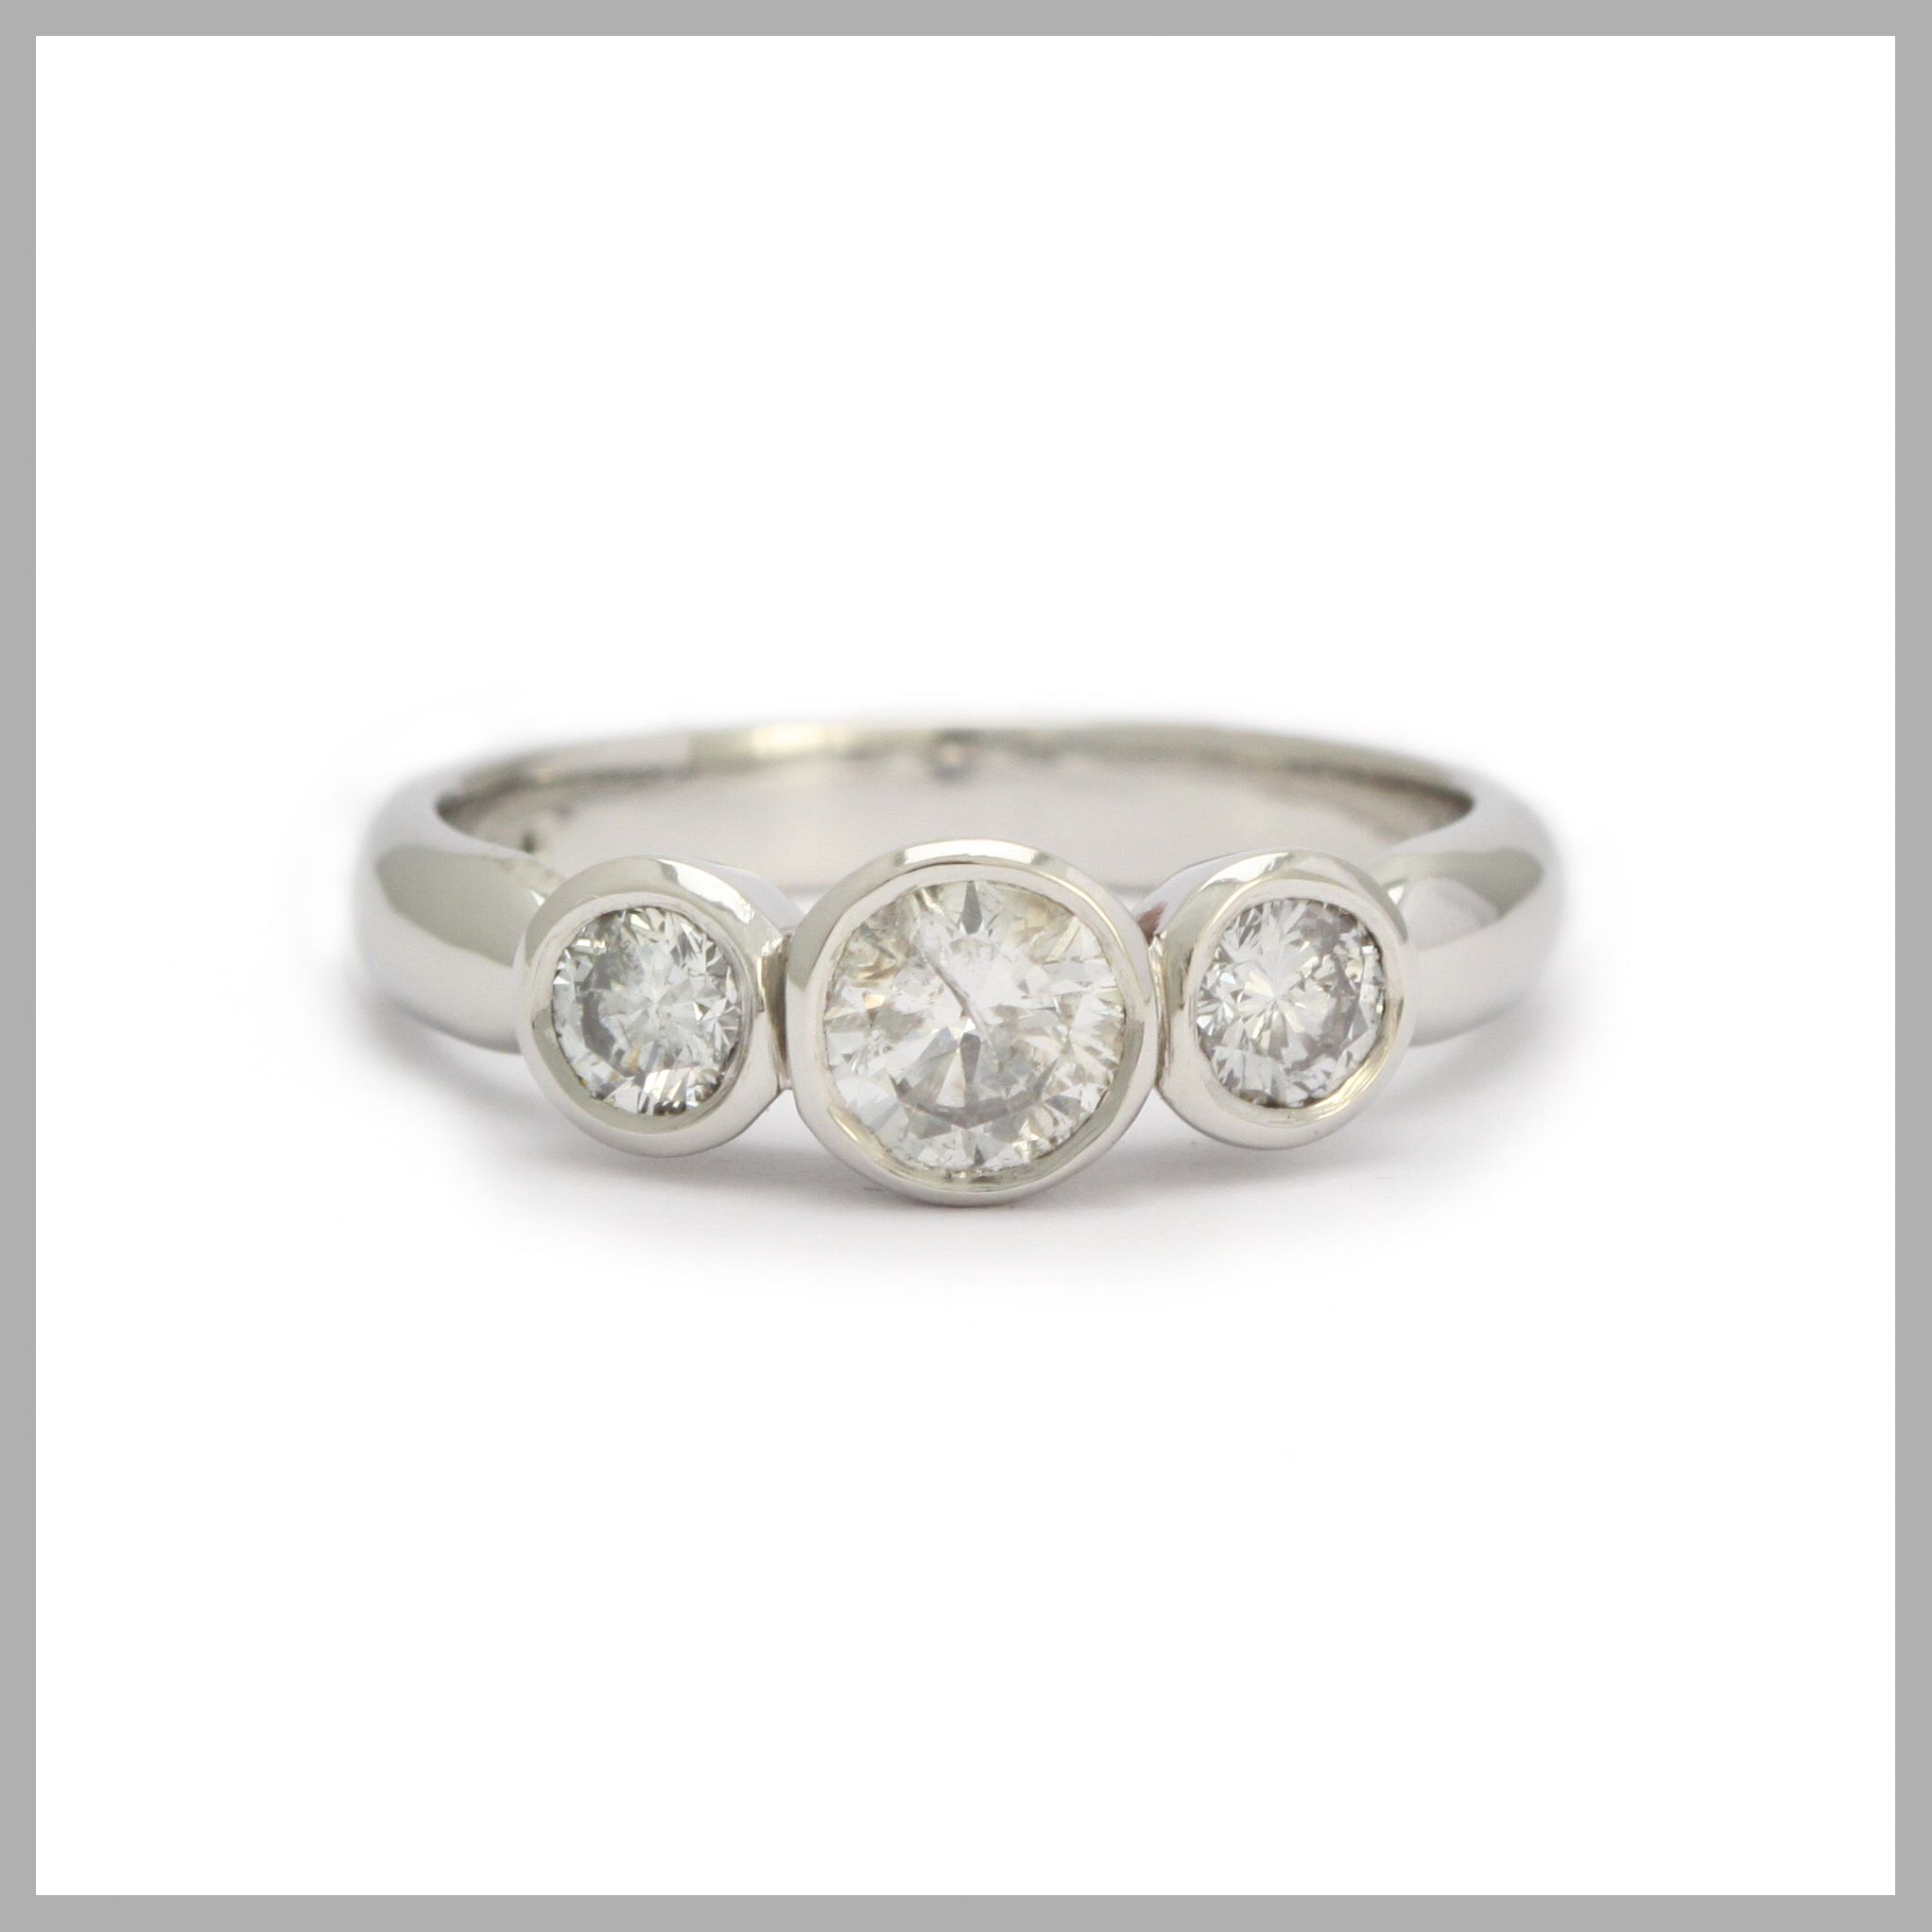 ring mkr bark image engagement view fine rings a larger bespoke diamond